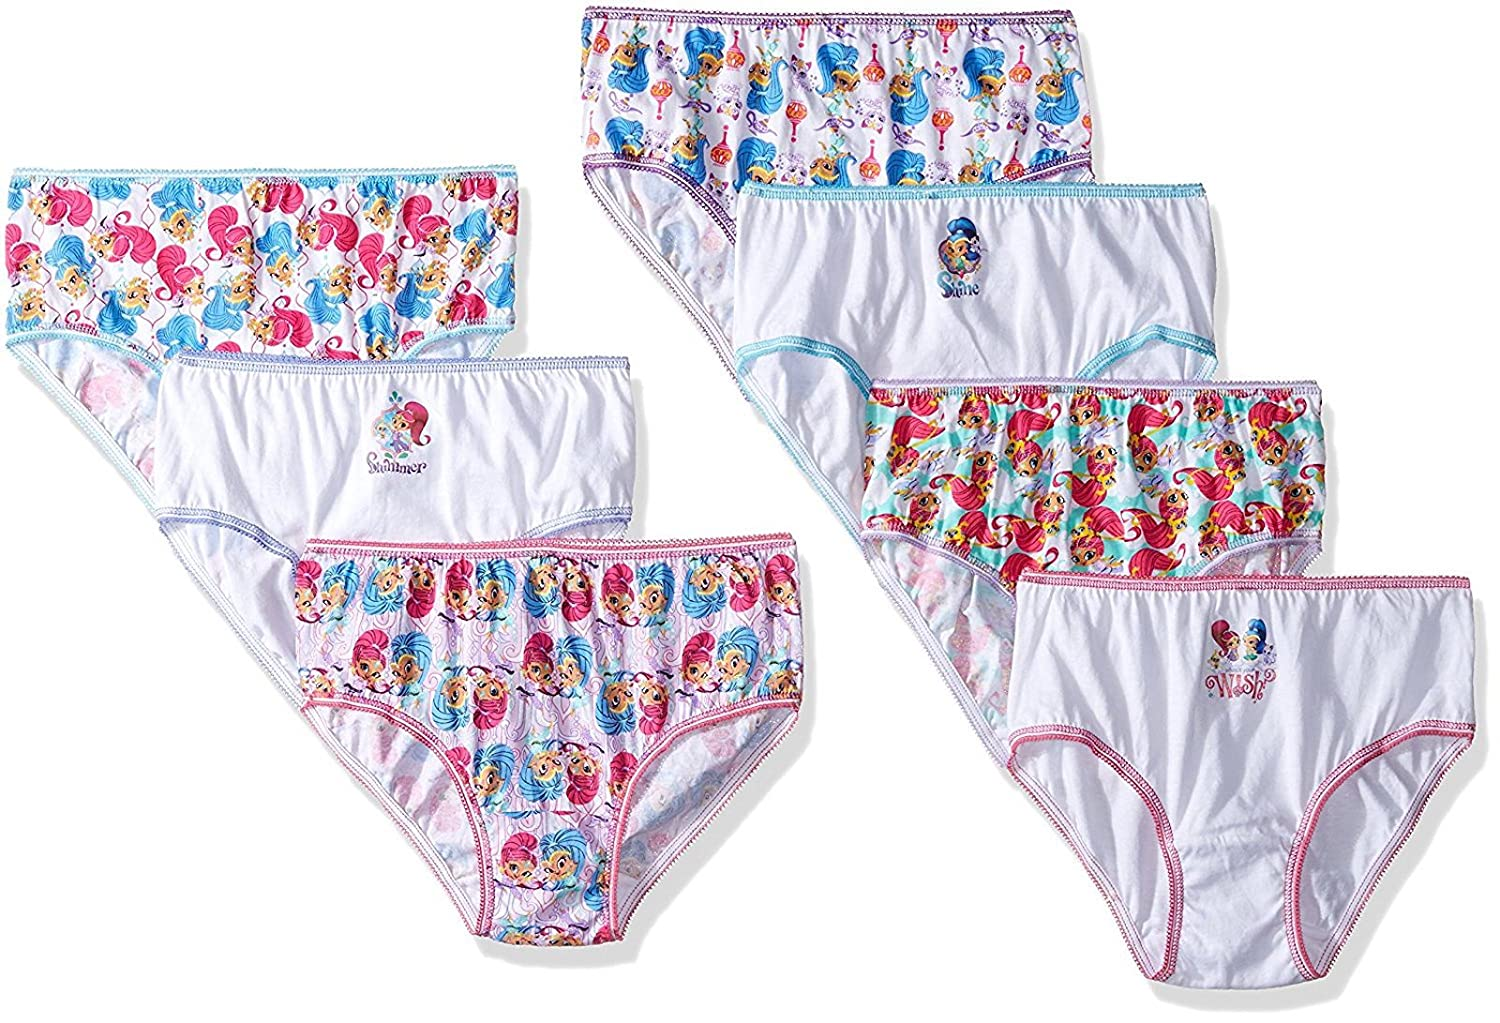 Nickelodeon Little Girls' Shimmer and Shine 7pk Underwear Panties Sizes: 4-6